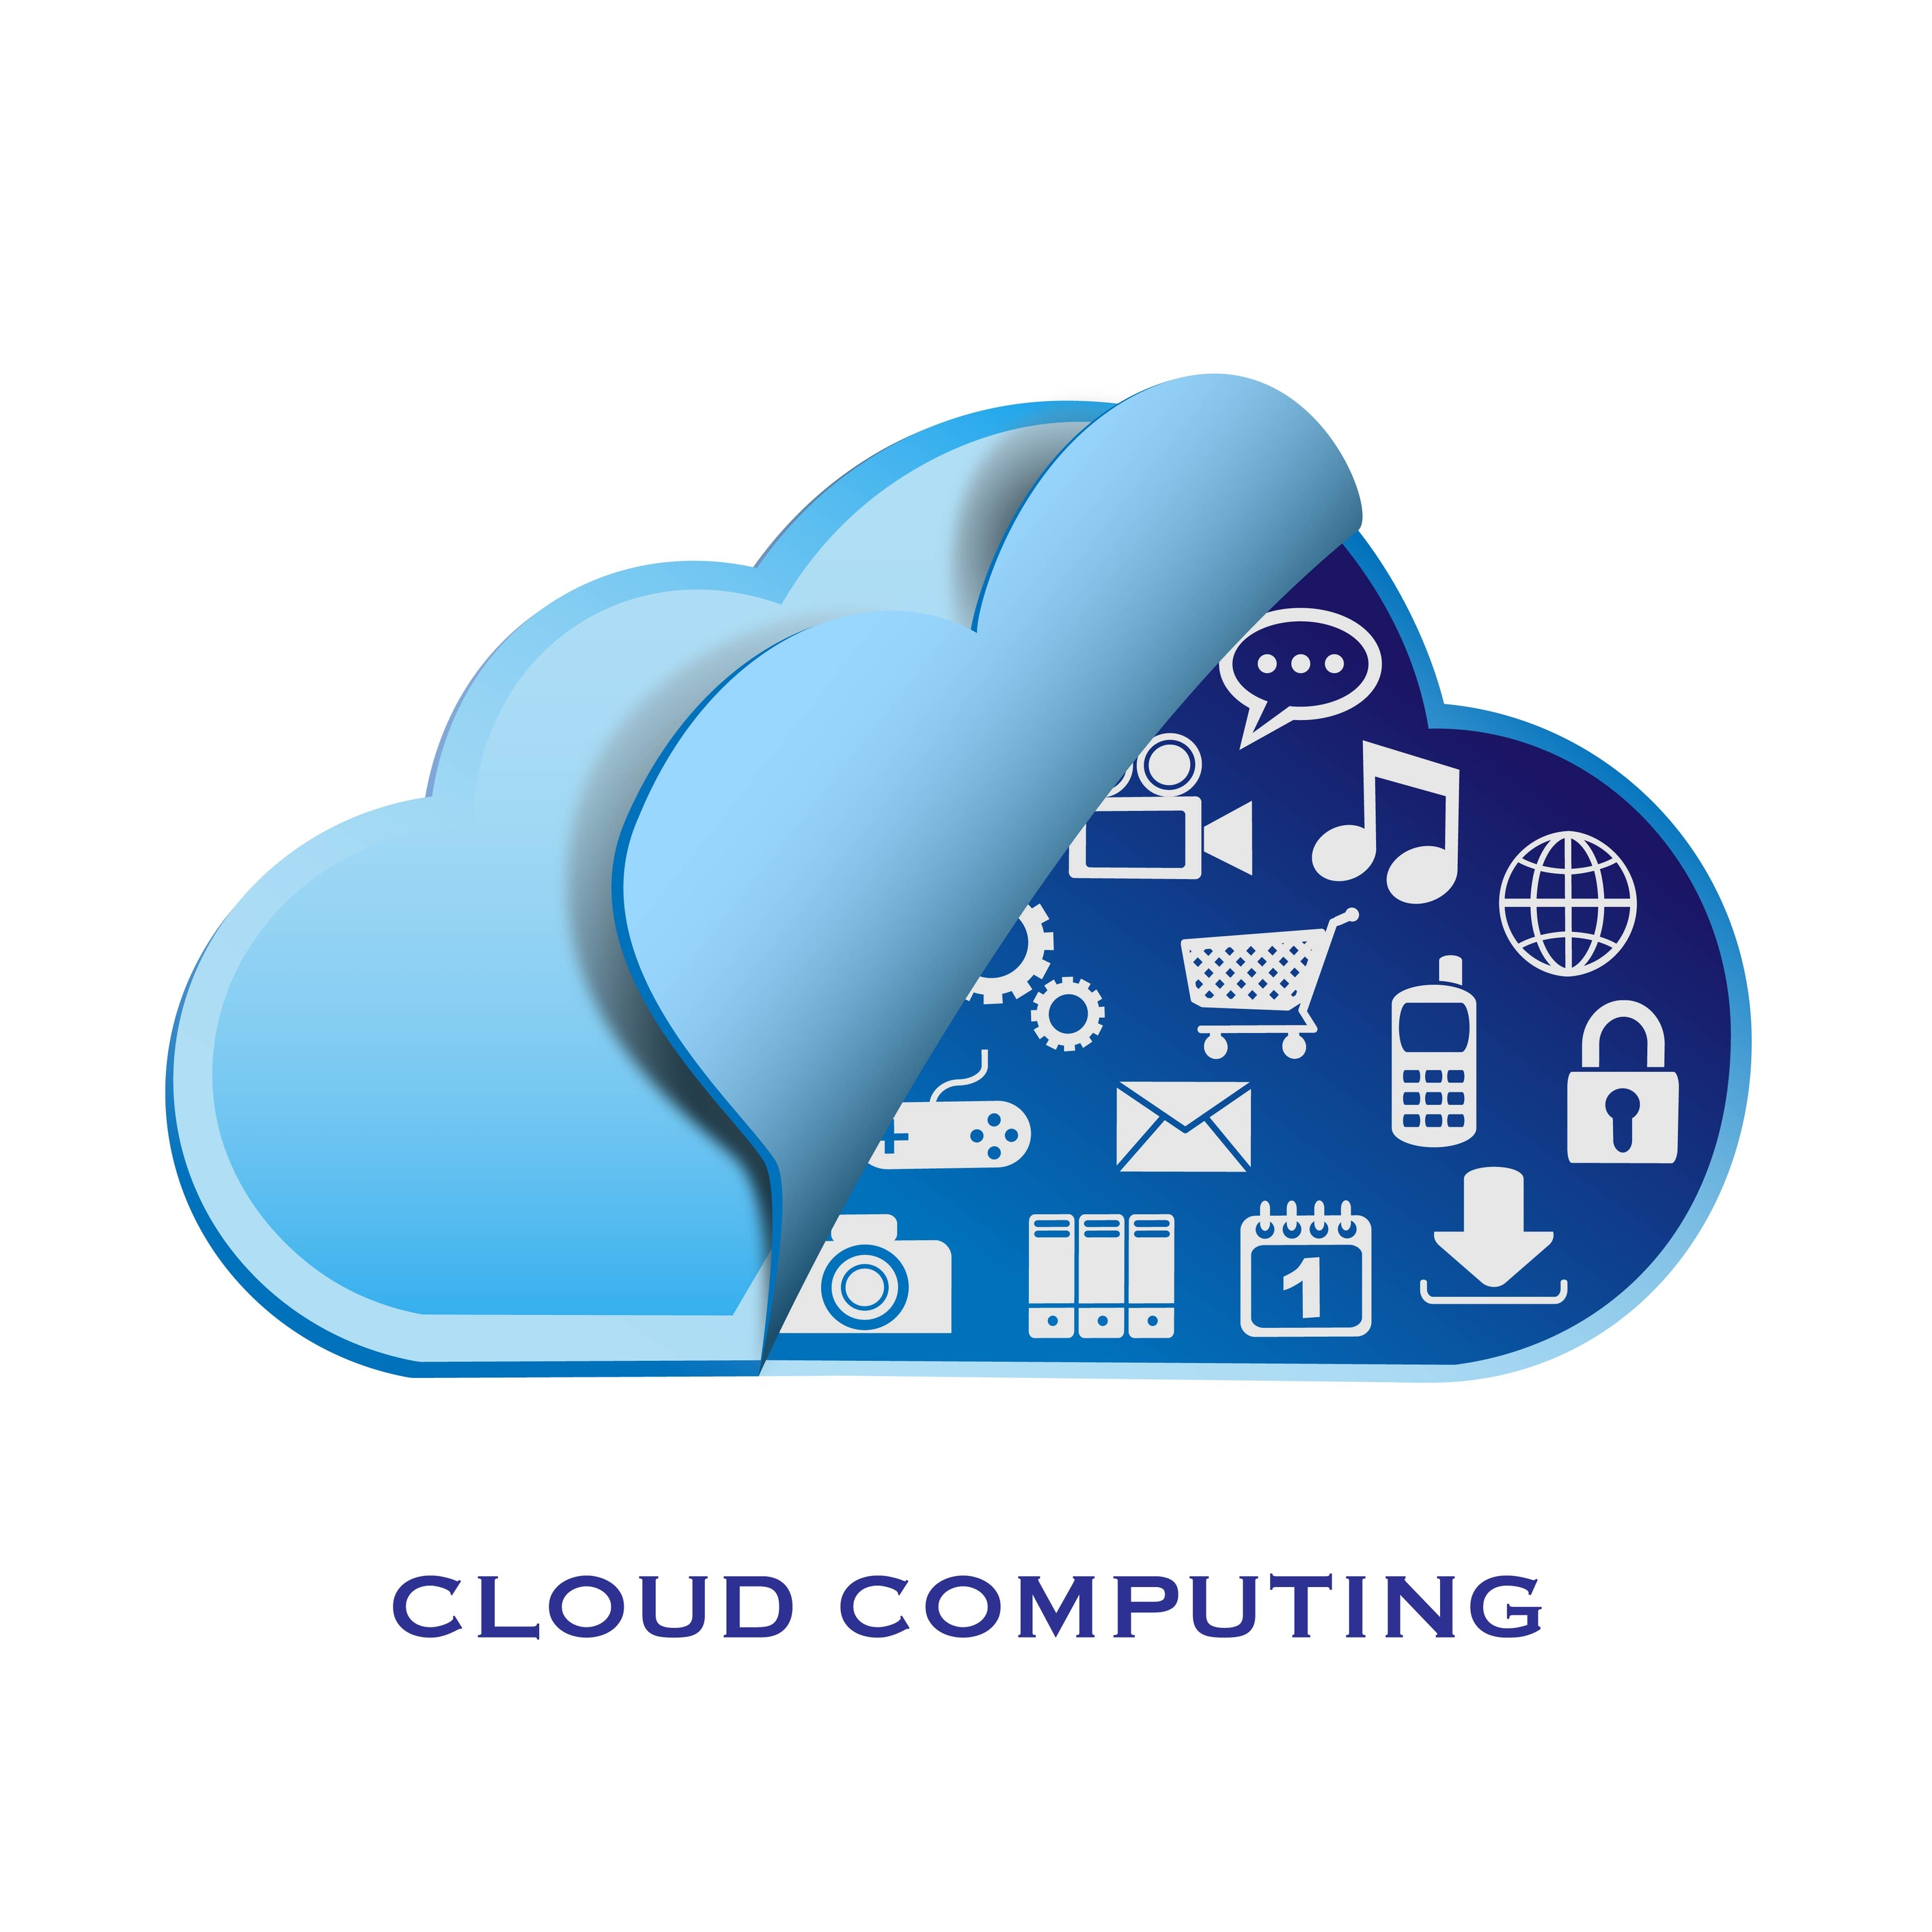 cloud computing images reverse search